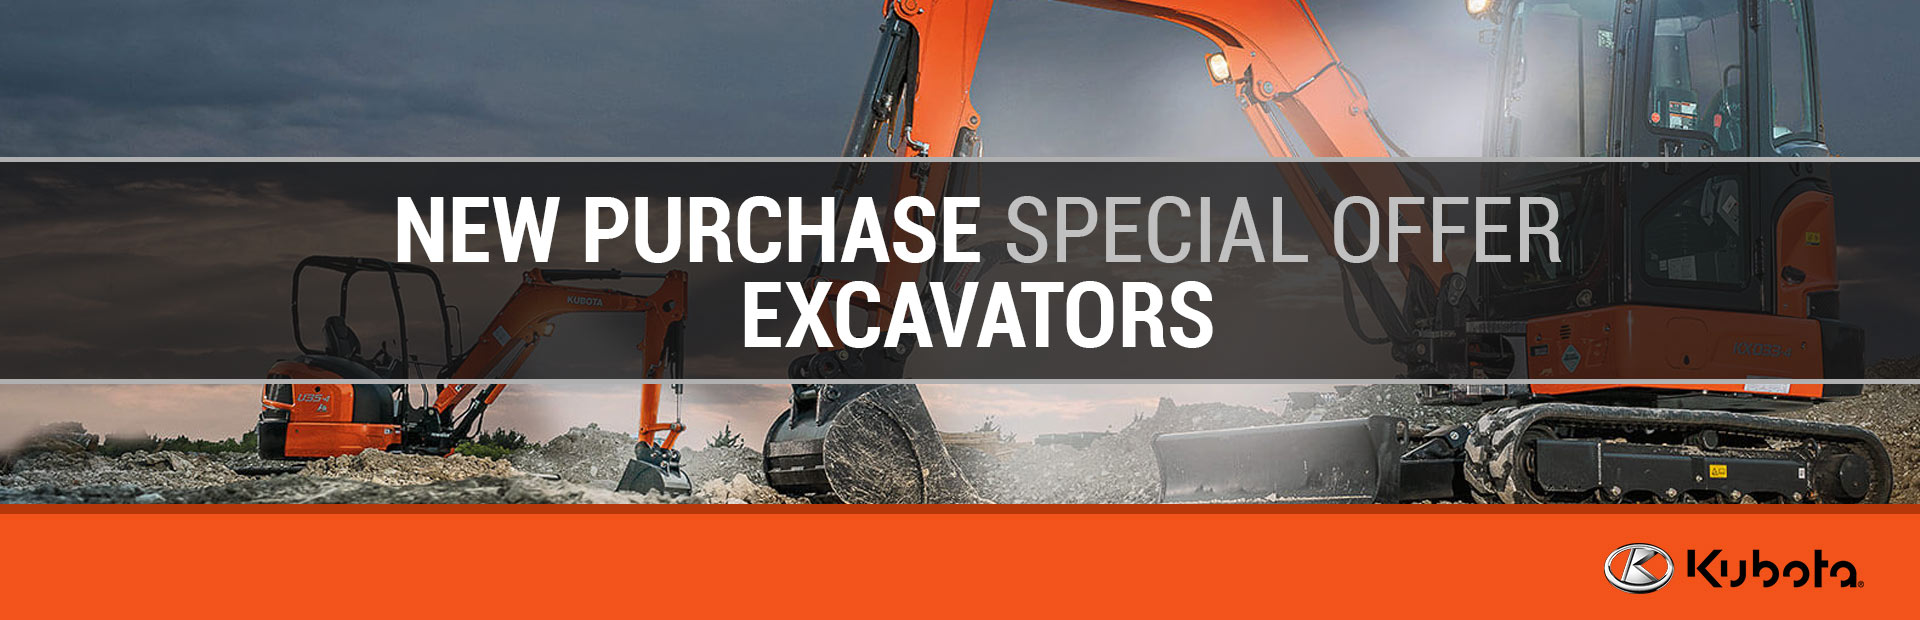 New Purchase Special Offer - Excavators